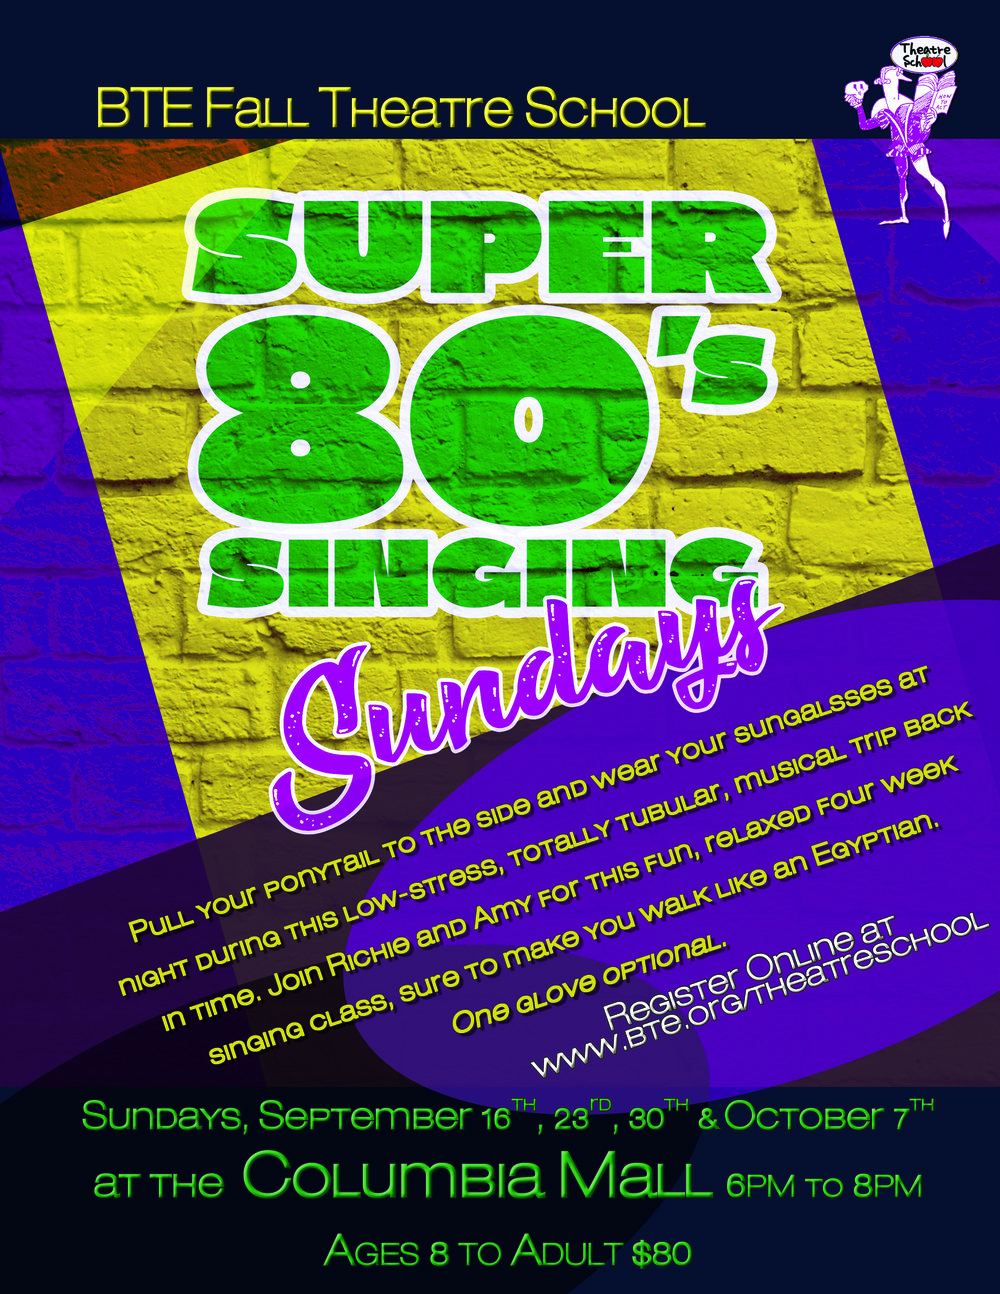 Super Singing Sundays   To register for classes,  click here    **Students MUST register online because of class limits. If you are unable to register online, please contact Amy at    amyrenebyrne@bte.org   .      Refunds will not be issued without a minimum of one week notice.